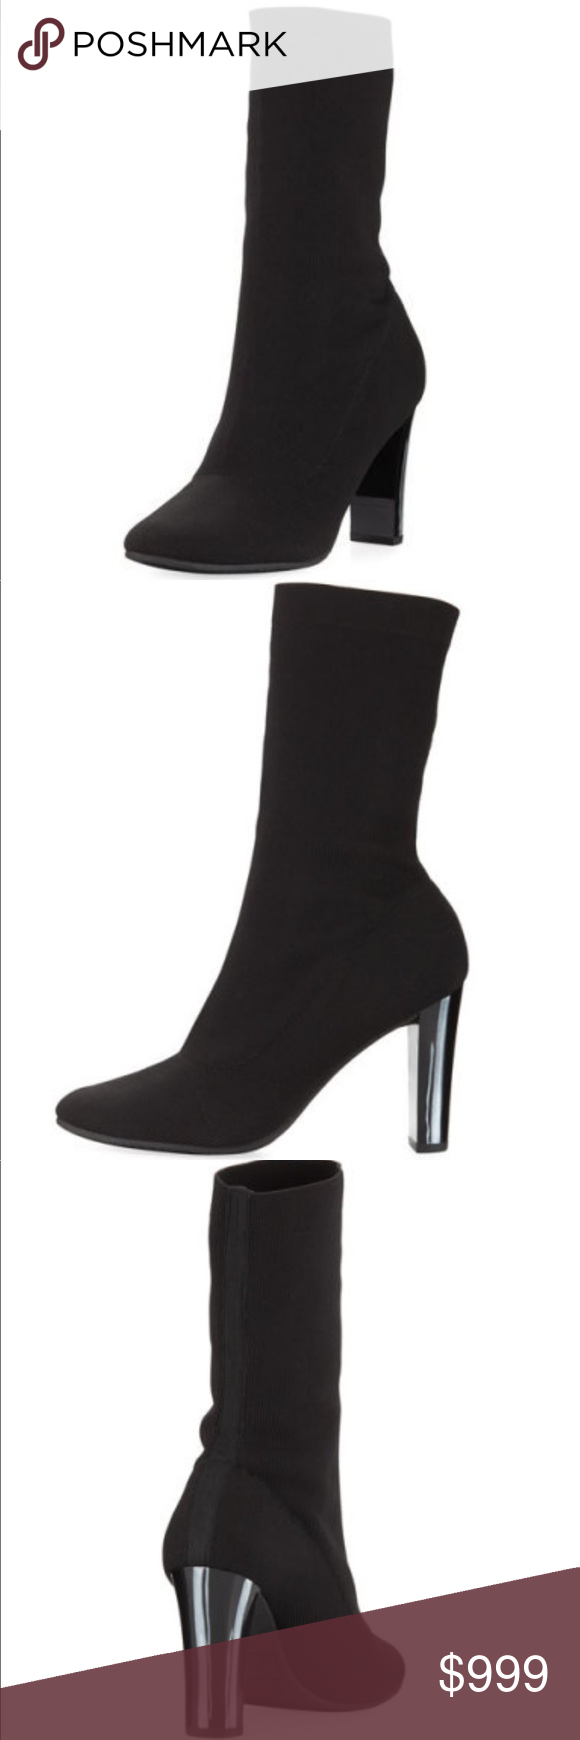 """1fe16bc68f186 🦋Joy black stretch-sock boot Beautiful and sexy black knit heeled bootie  4"""" covered patterned heel black with white stripes. 5"""" shaft. 8"""". Circ."""